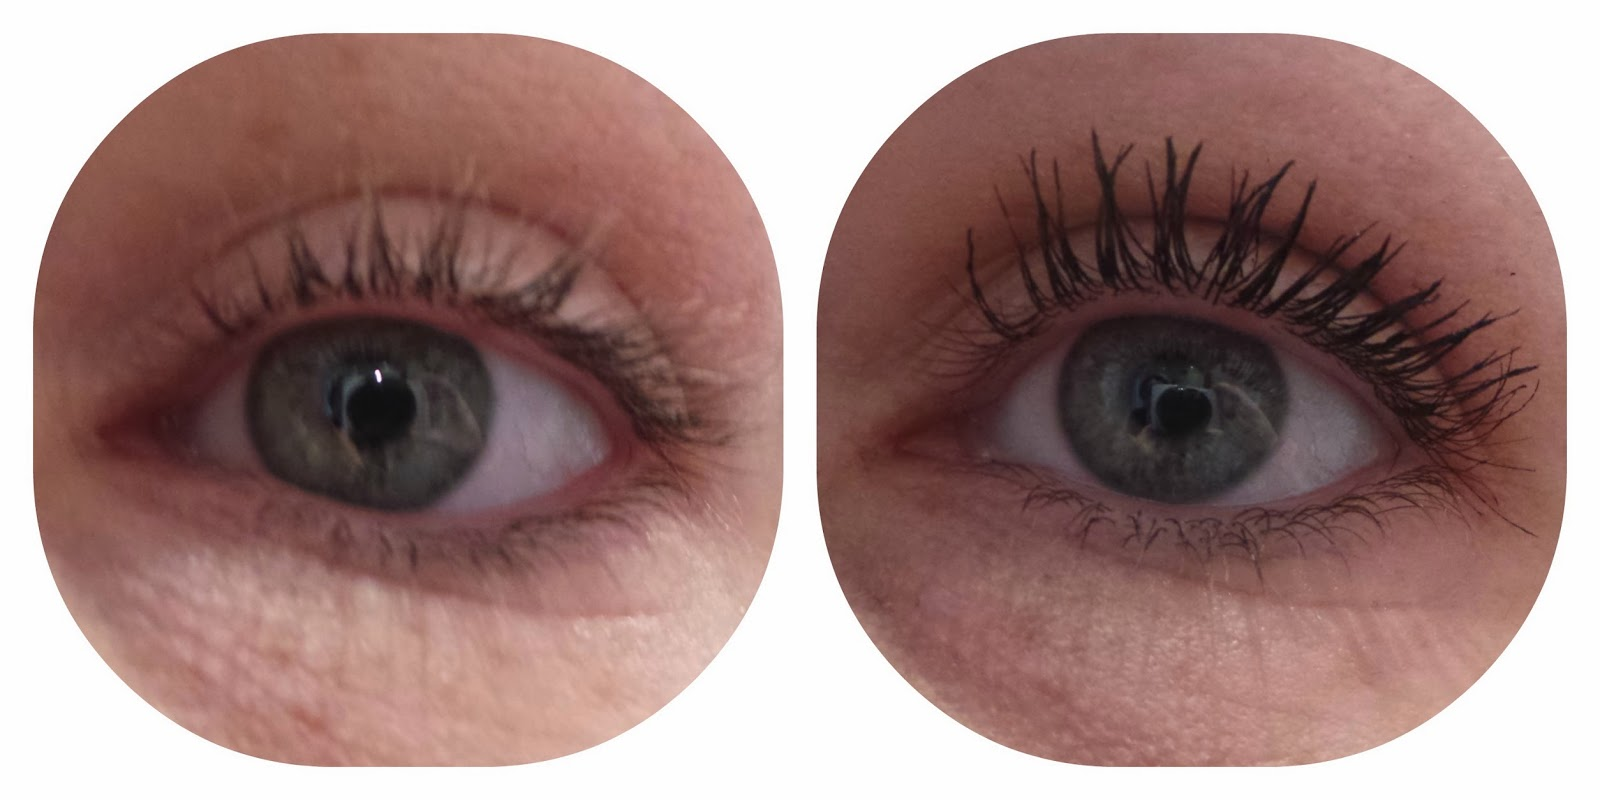 what does lancome mascara look like on?